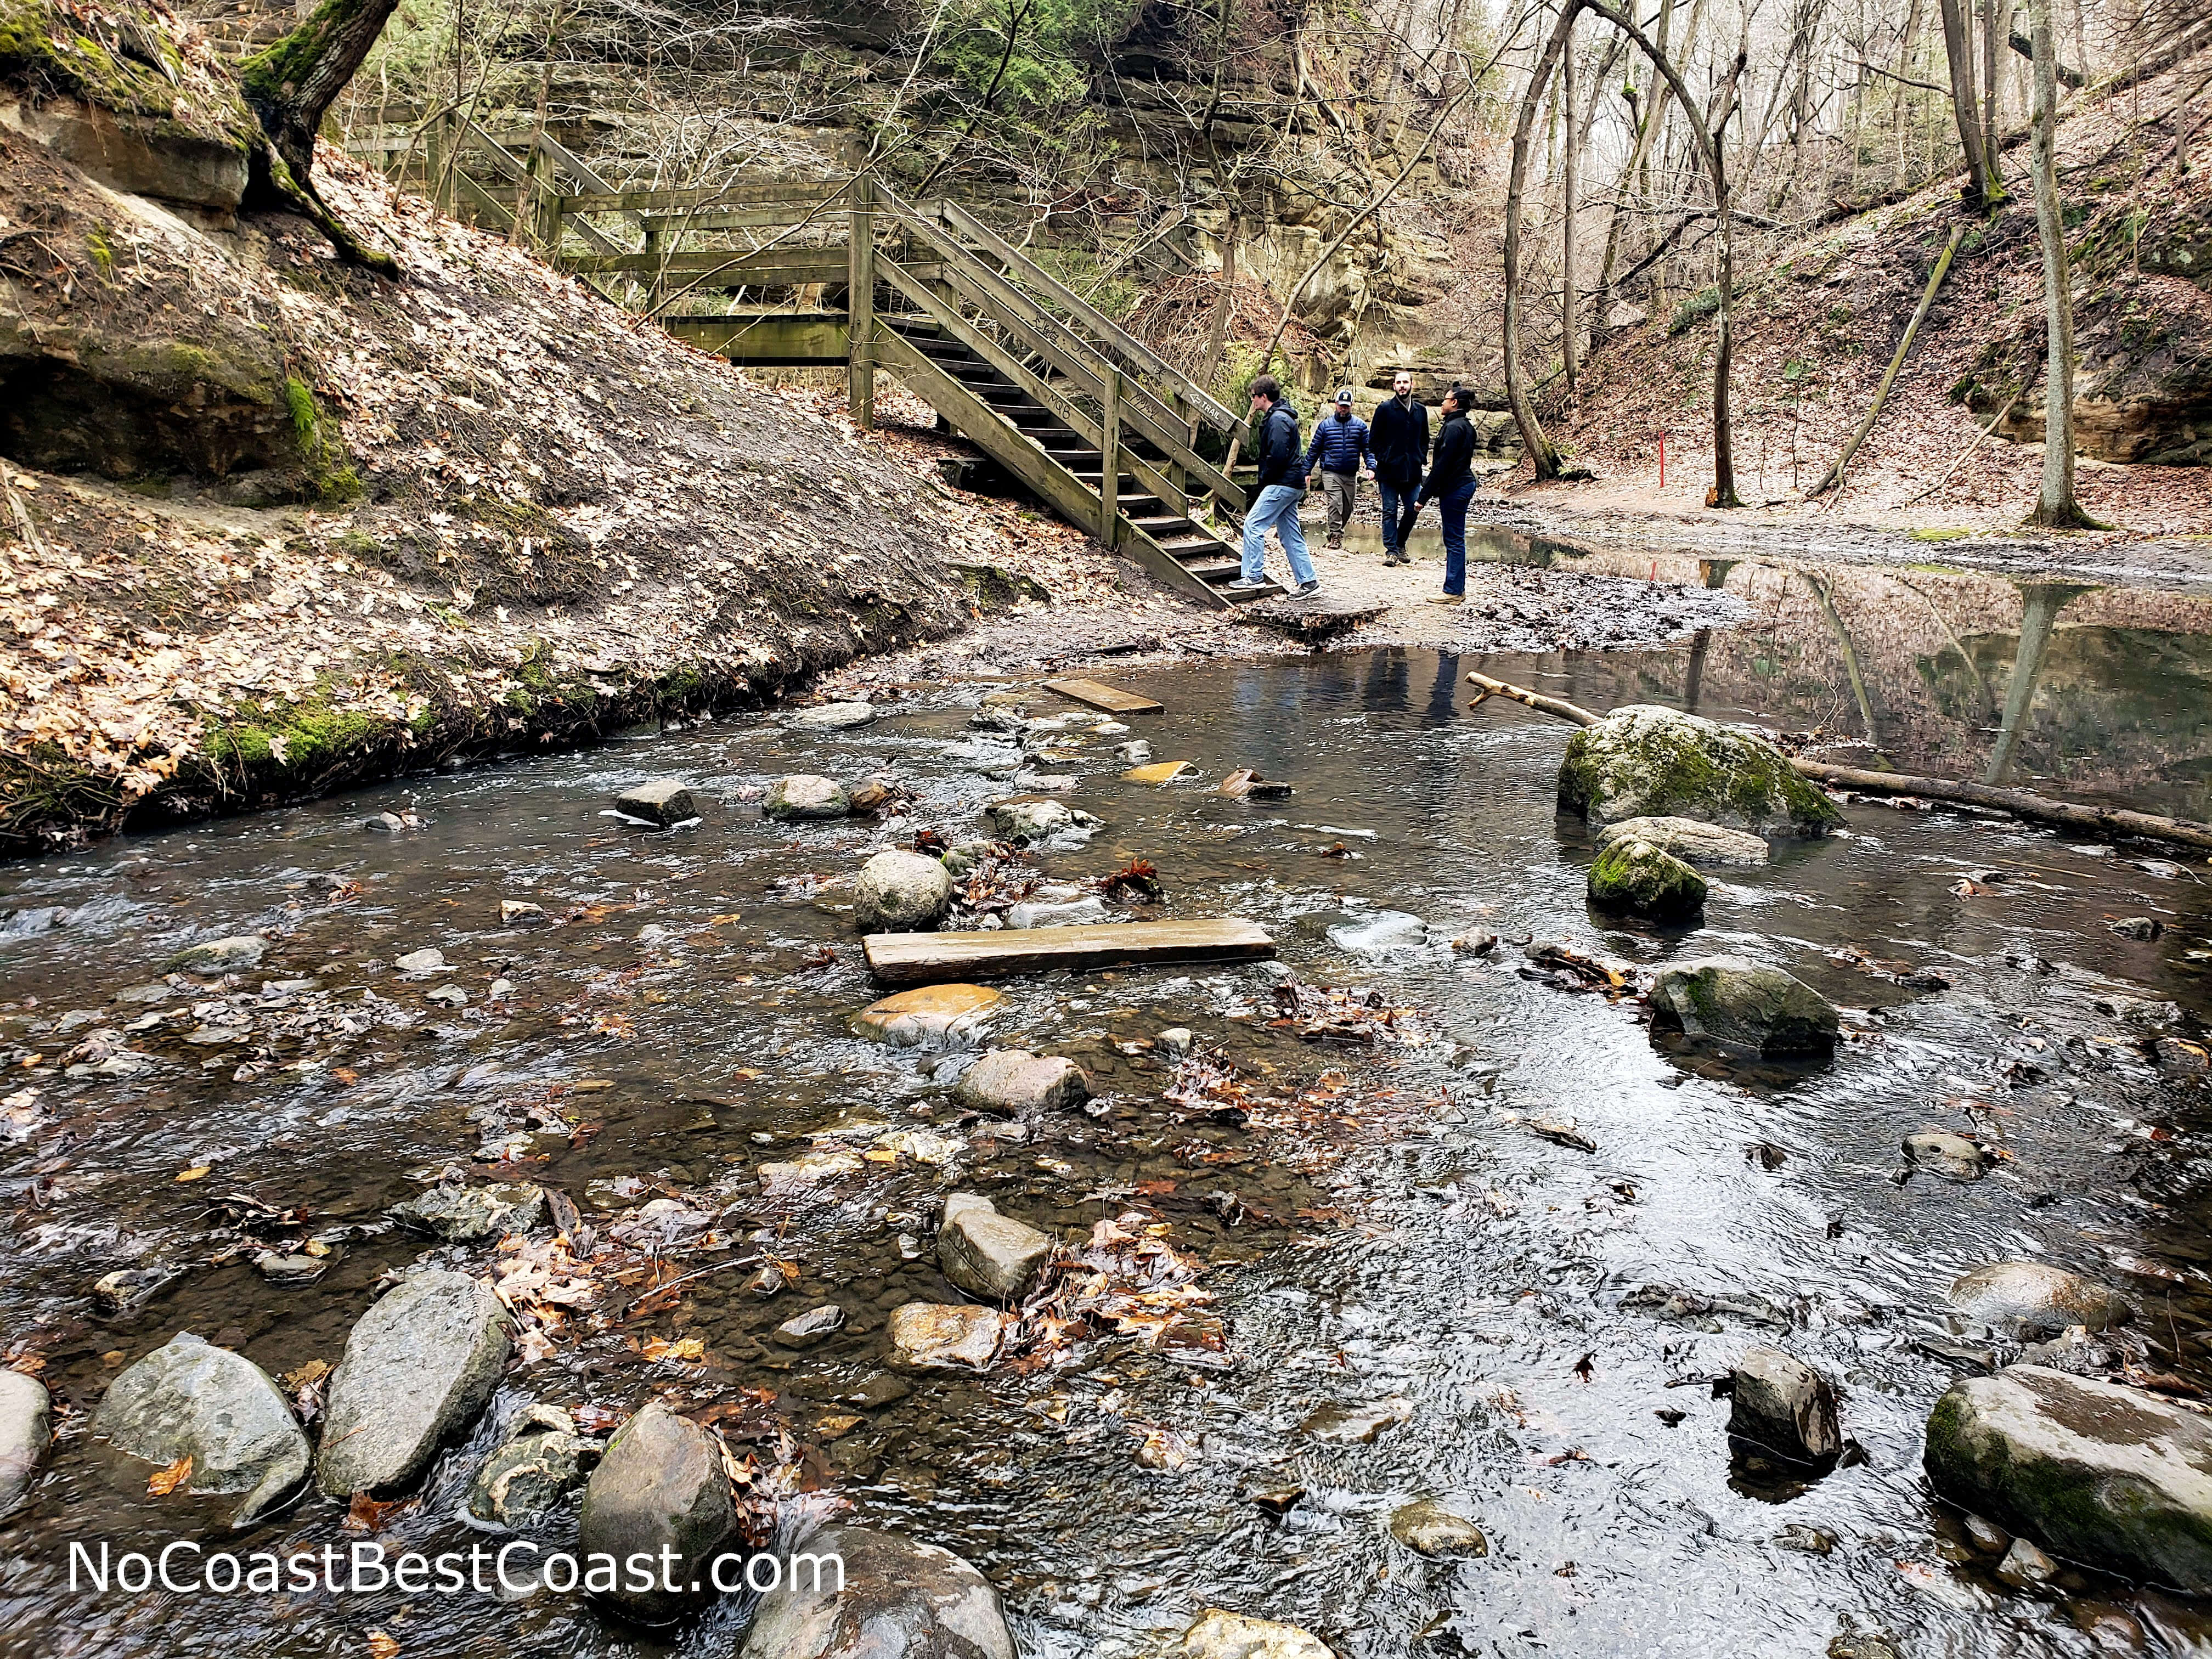 Precarious creek crossings are a hallmark of this trail